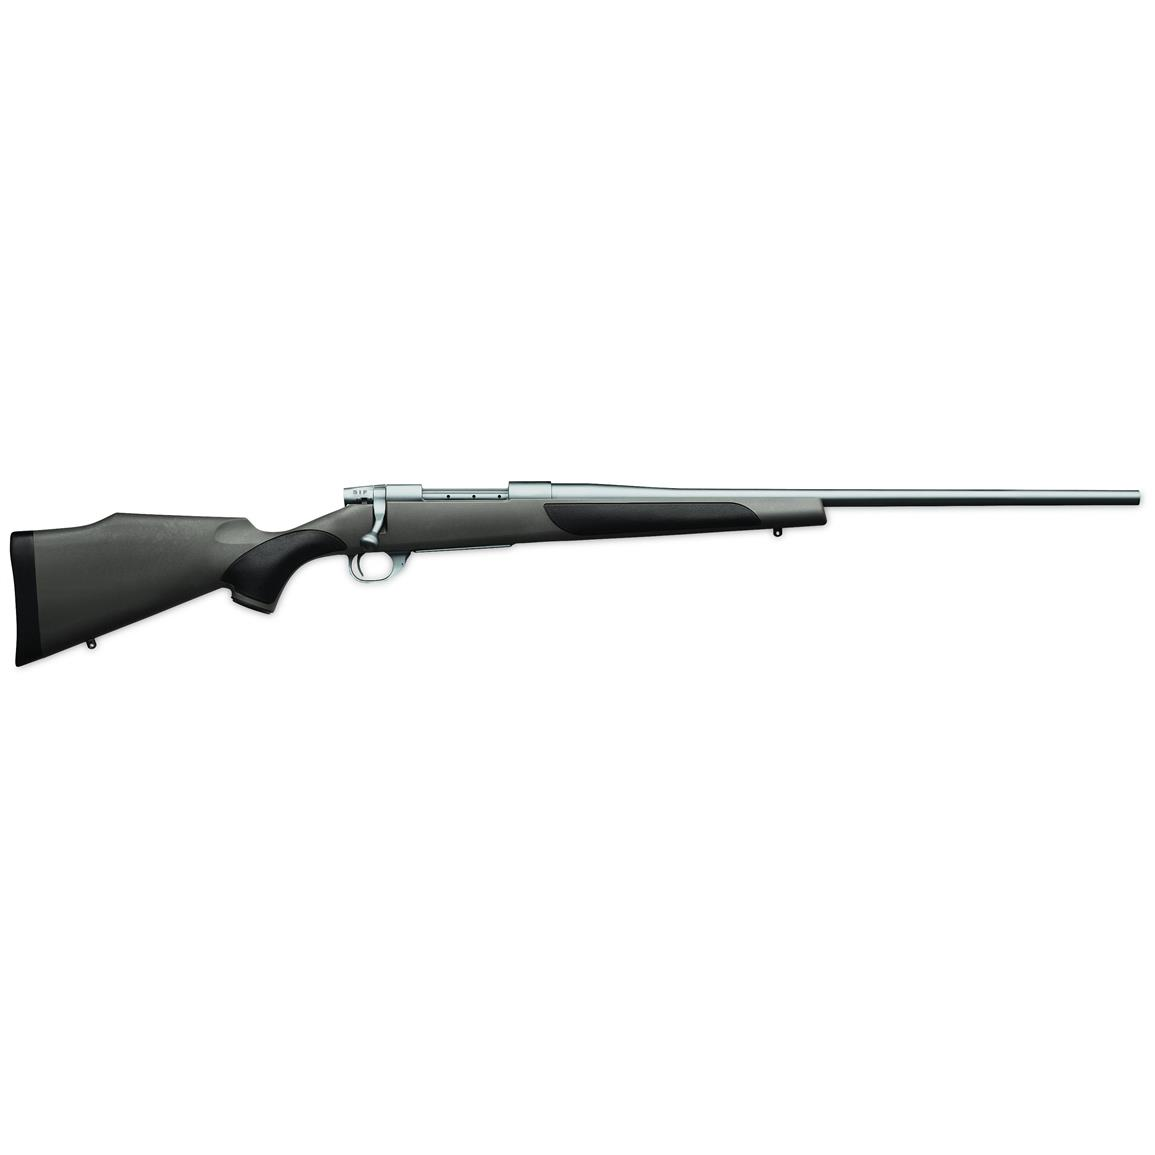 Weatherby Vanguard 2 Stainless Synthetic, Bolt Action, .30-06 Springfield, Centerfire, VGS306SR4O, 747115408412